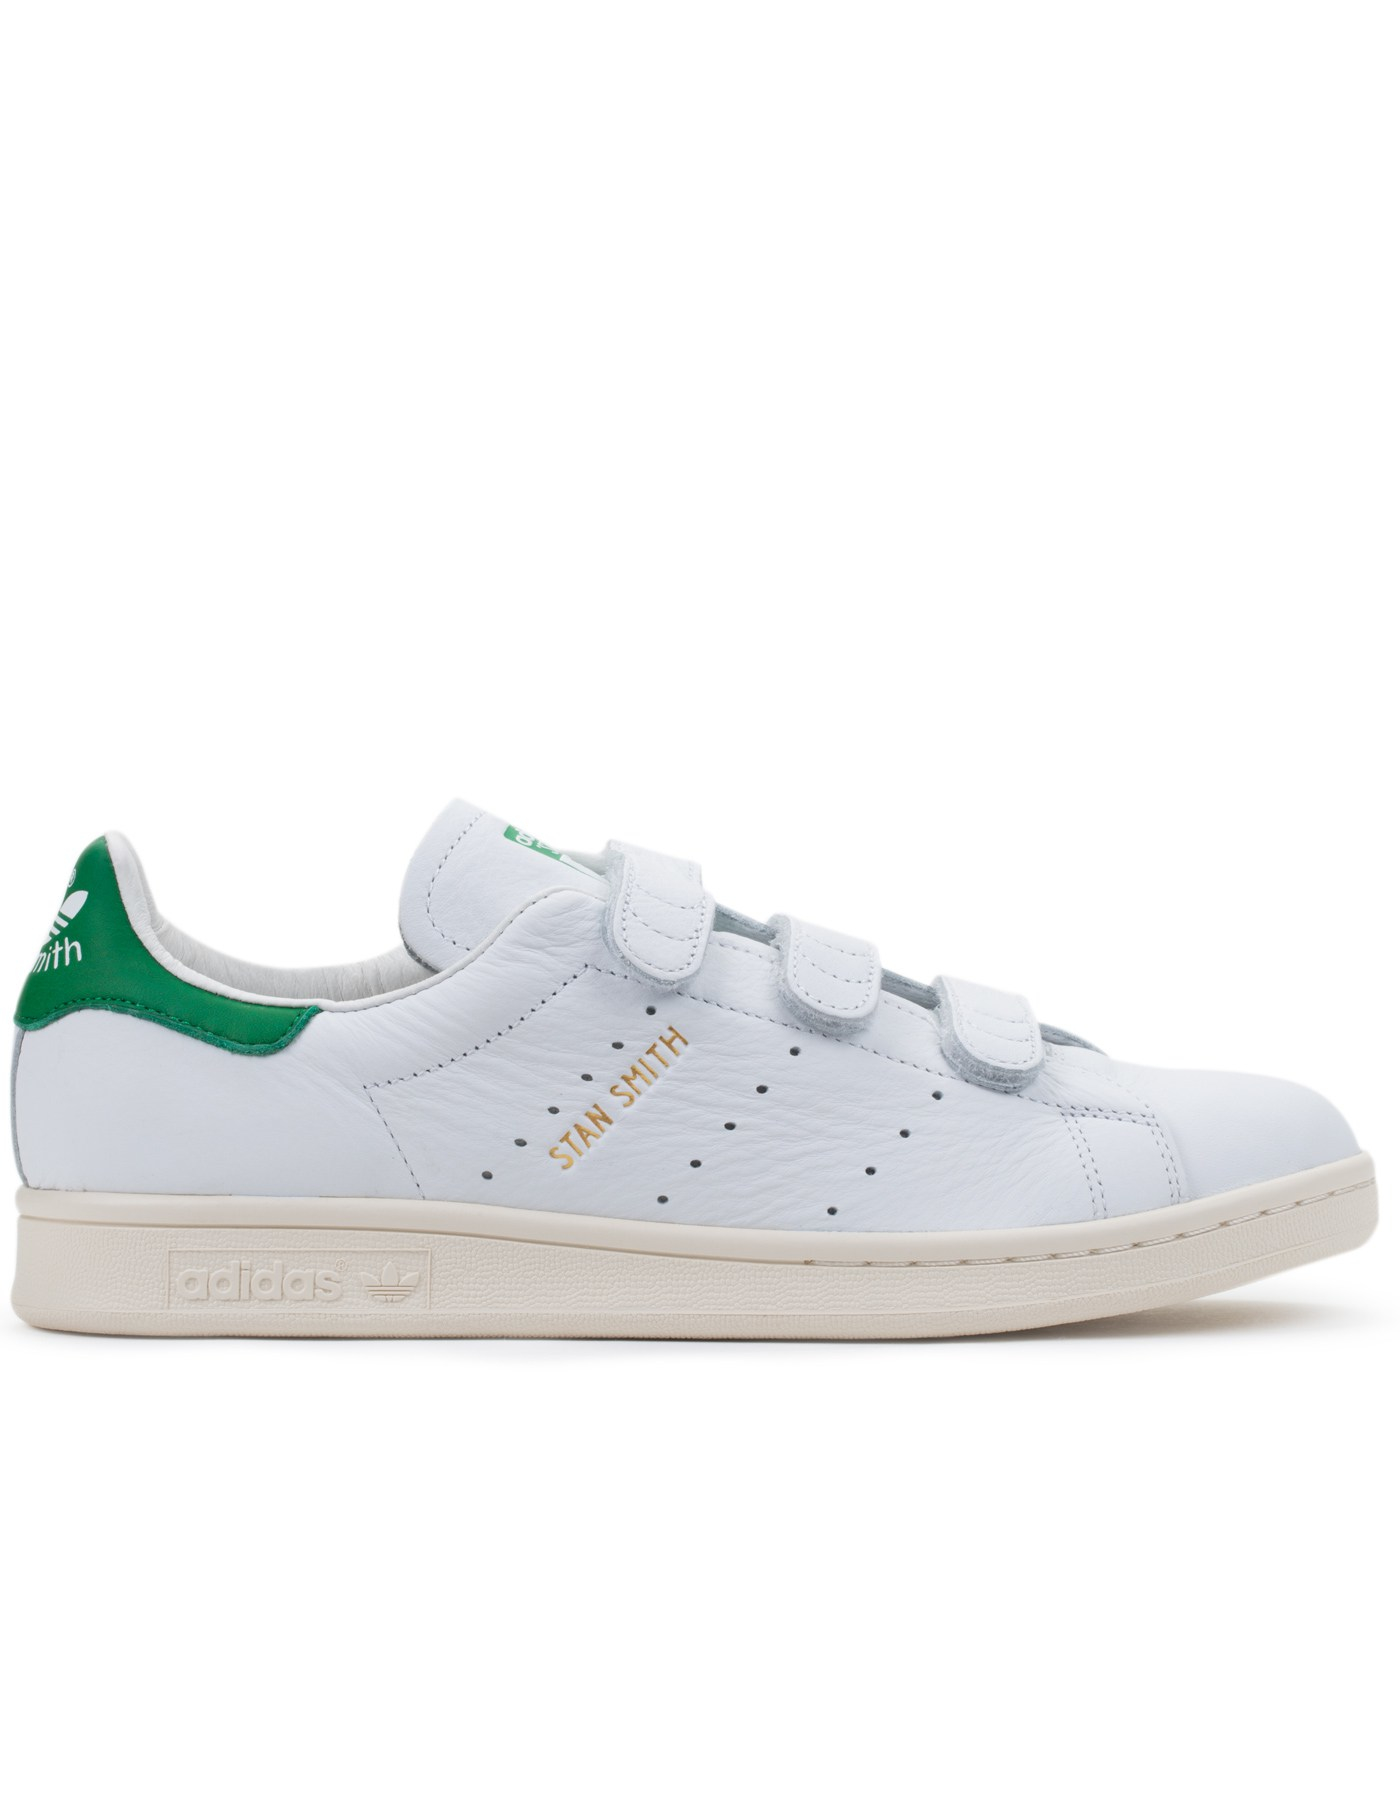 adidas originals stan smith cf shoes in white lyst. Black Bedroom Furniture Sets. Home Design Ideas